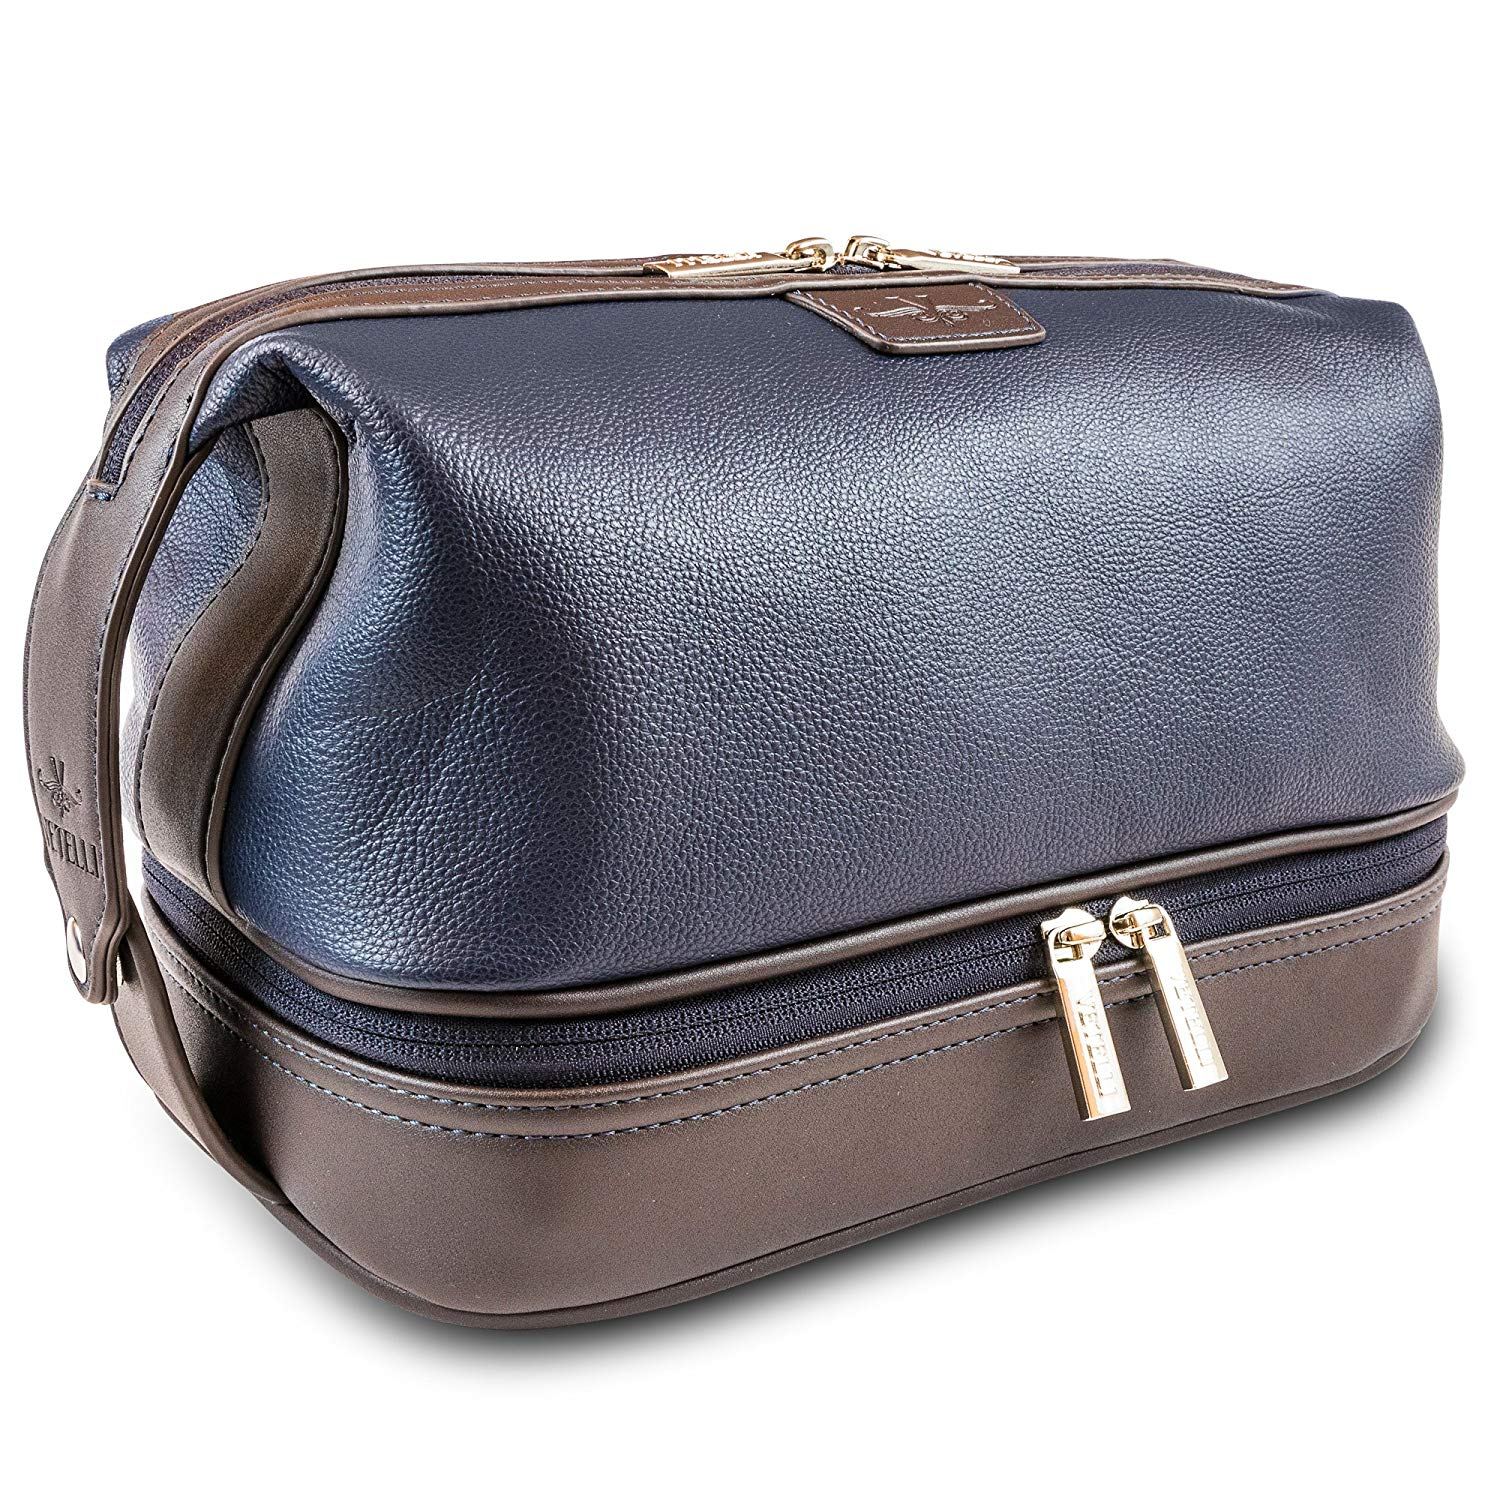 Vetelli Leo Mens Toiletry Bag and Dopp Kit - Lots of Pockets, Lots of Space with Large Compartments and a Durable Design Makes it Easy to Stay Organized When Travelling for Business or Pleasure.